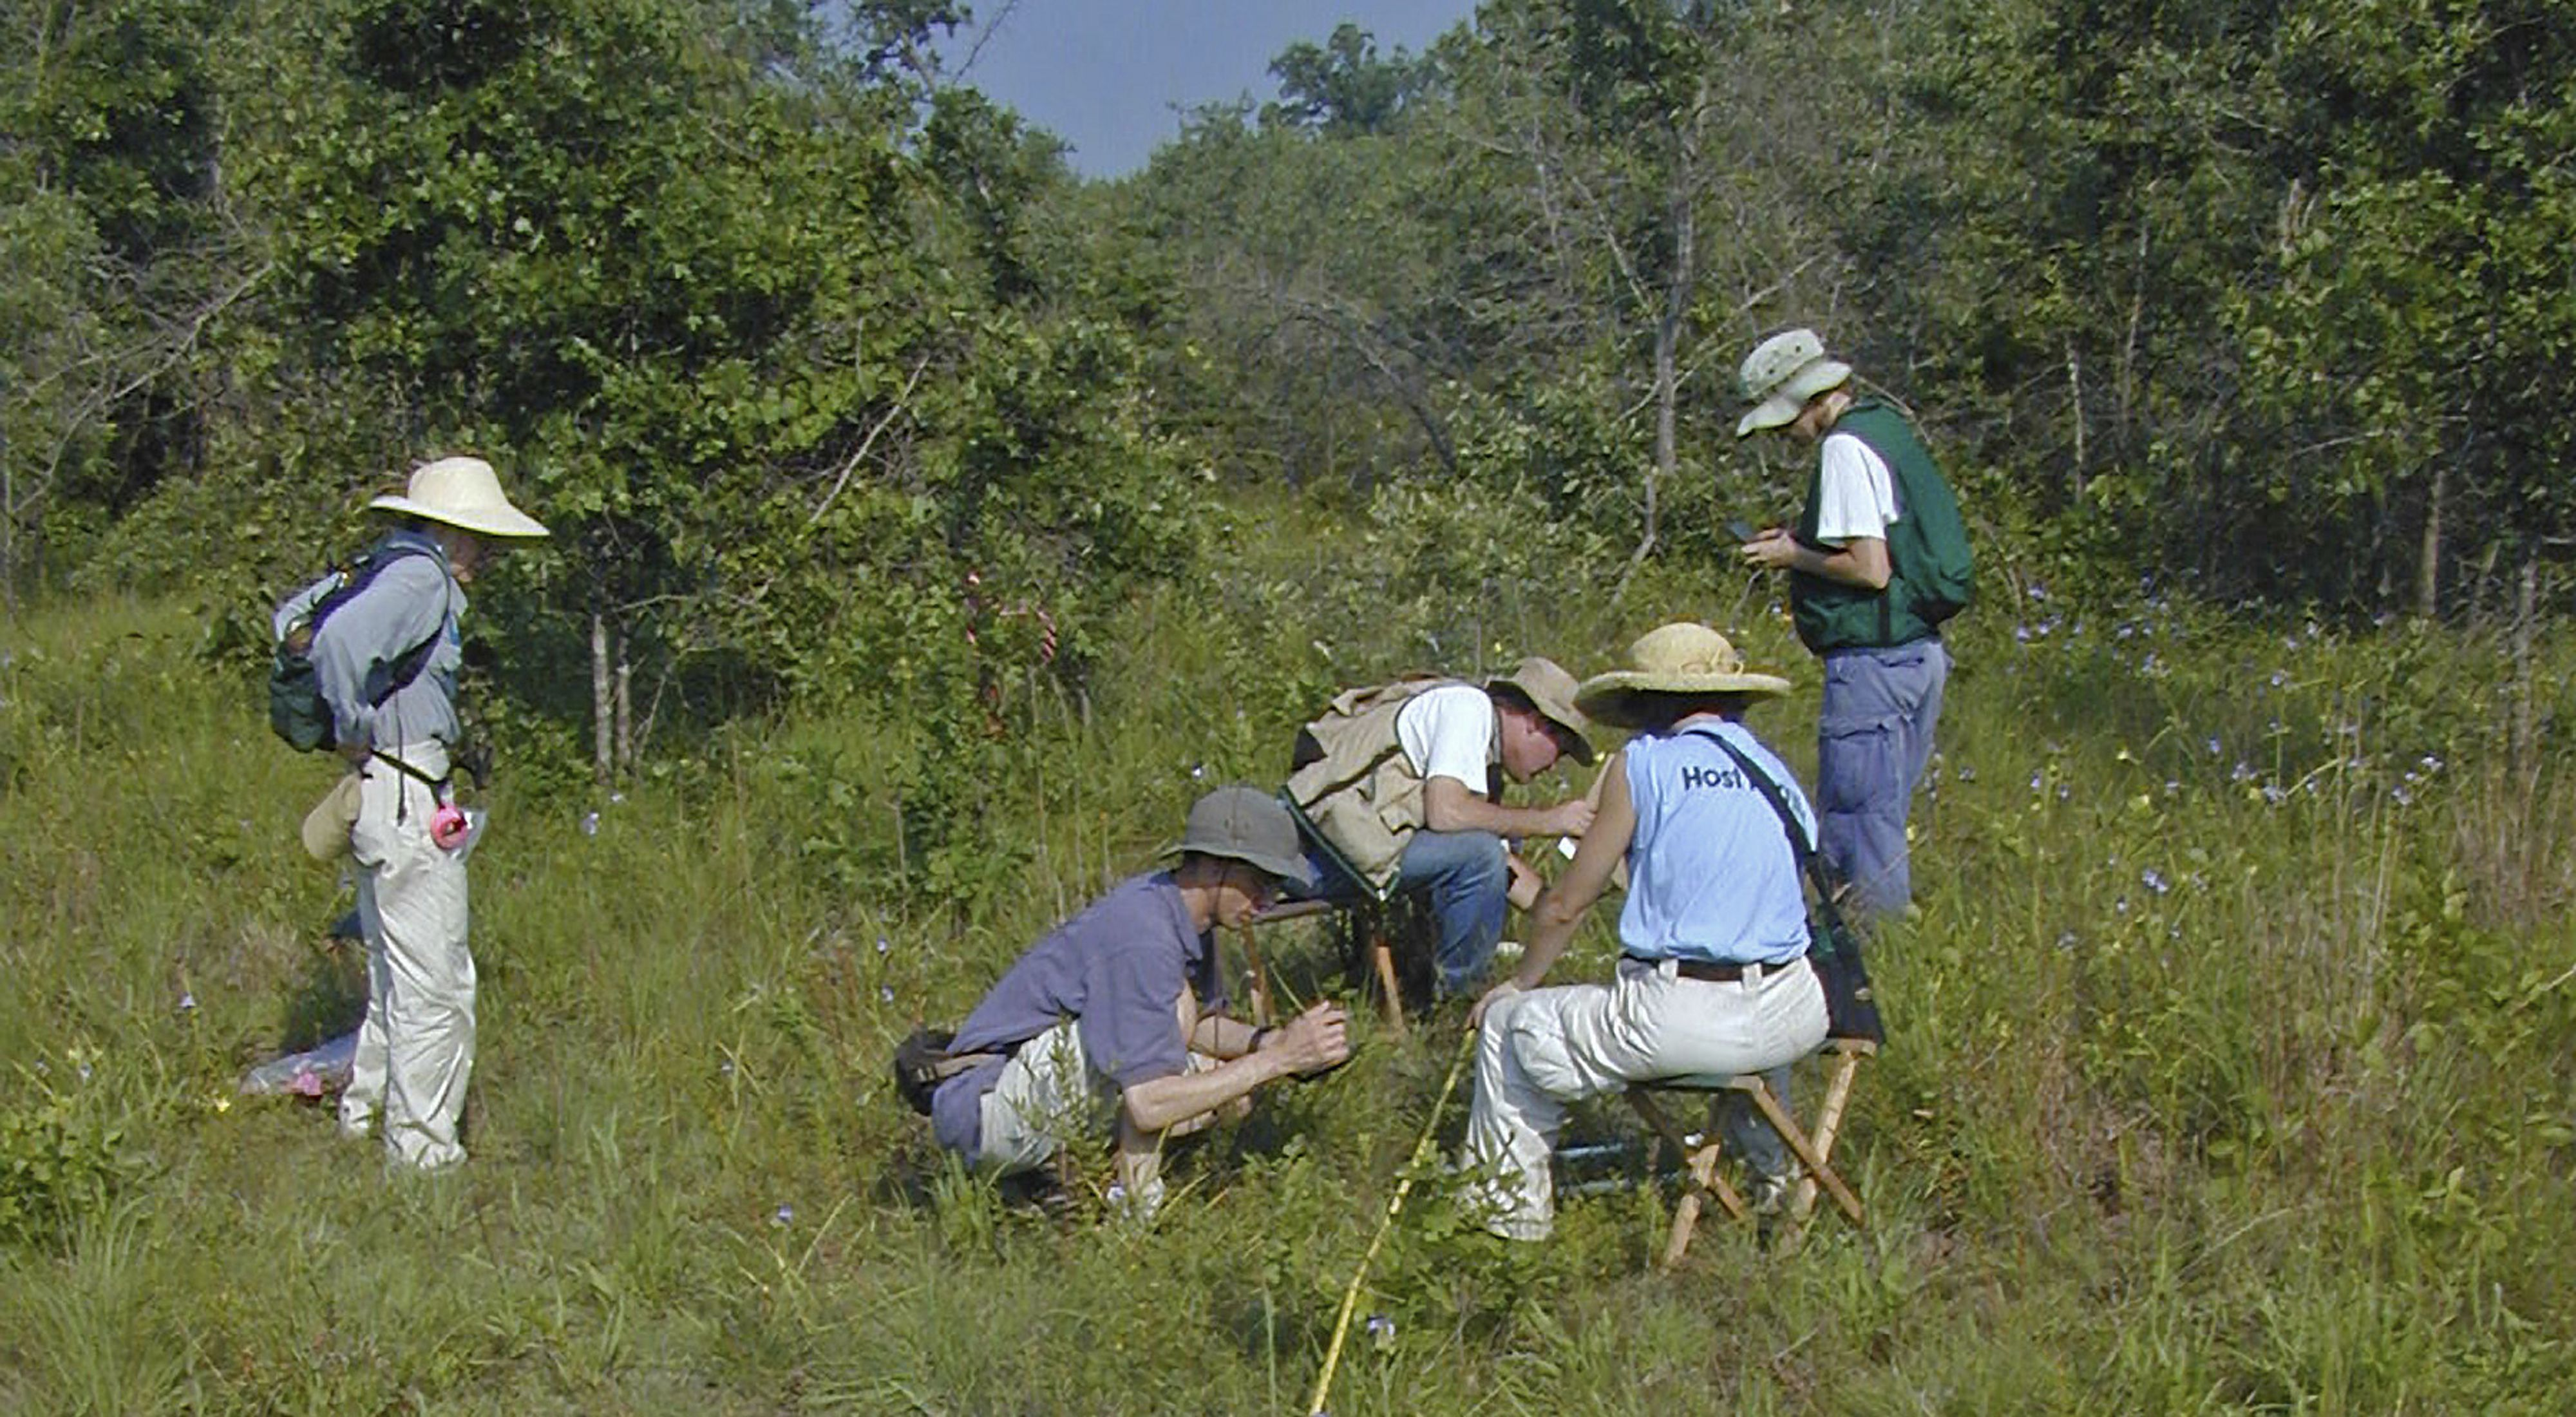 Conservancy scientists, volunteers and partners monitoring plants at Miller County Sandhills Natural Area.